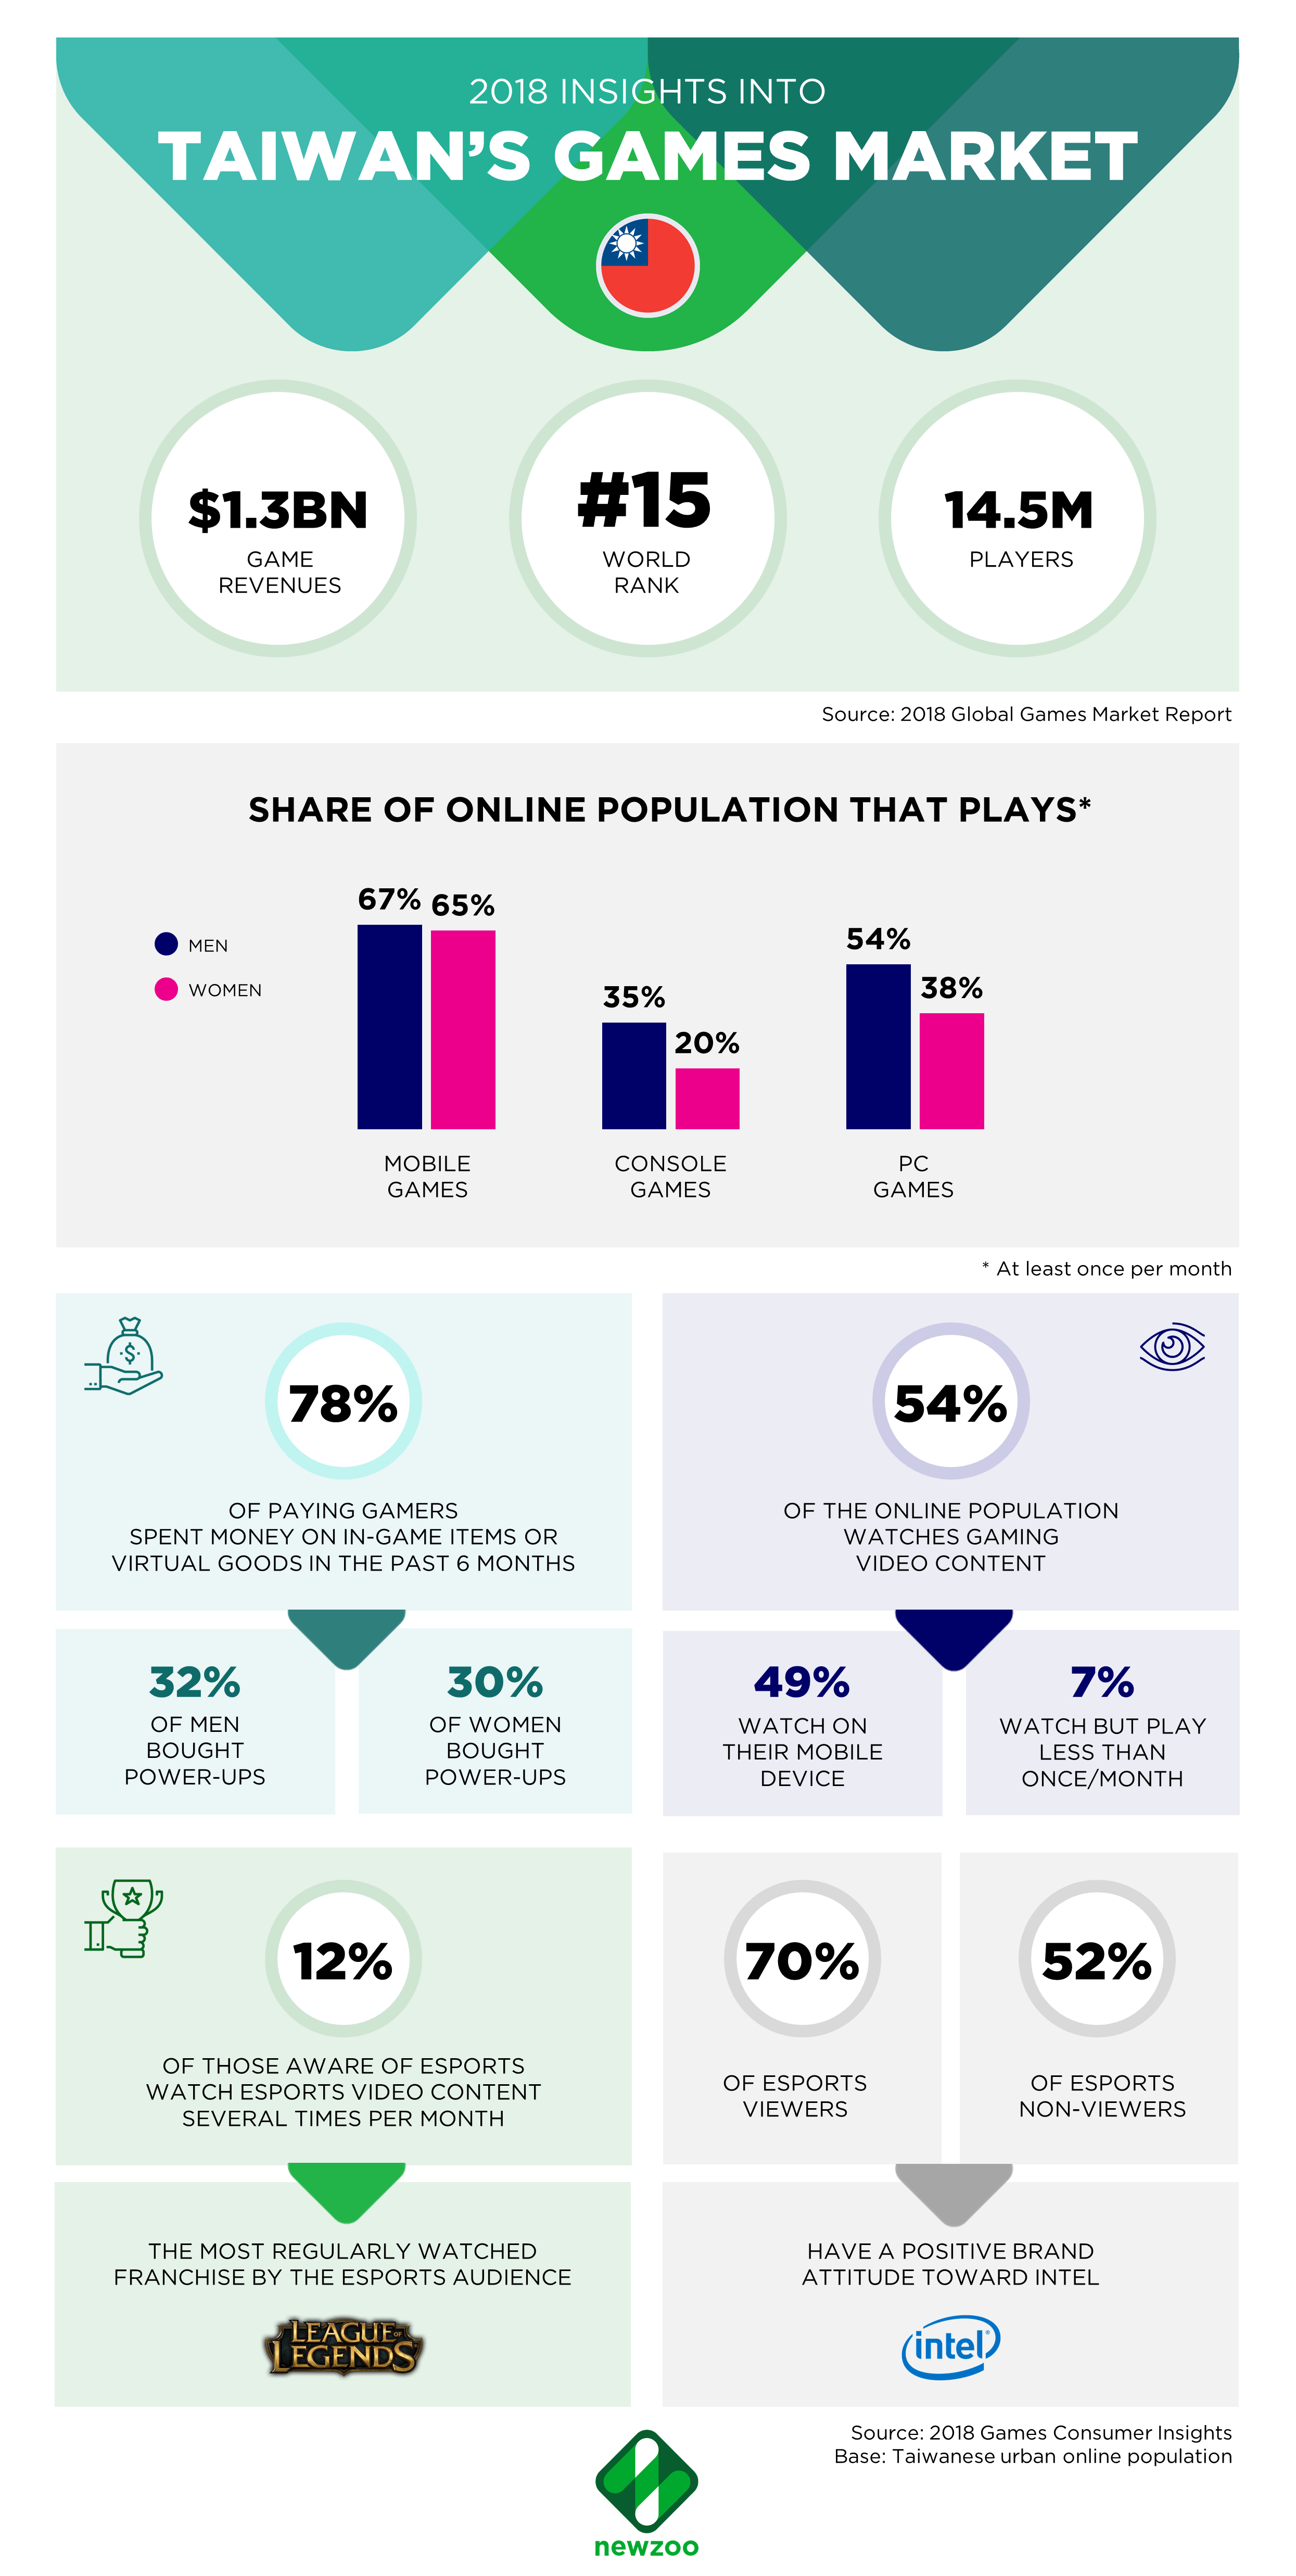 Taiwan Games Market 2018 infographic from Newzoo